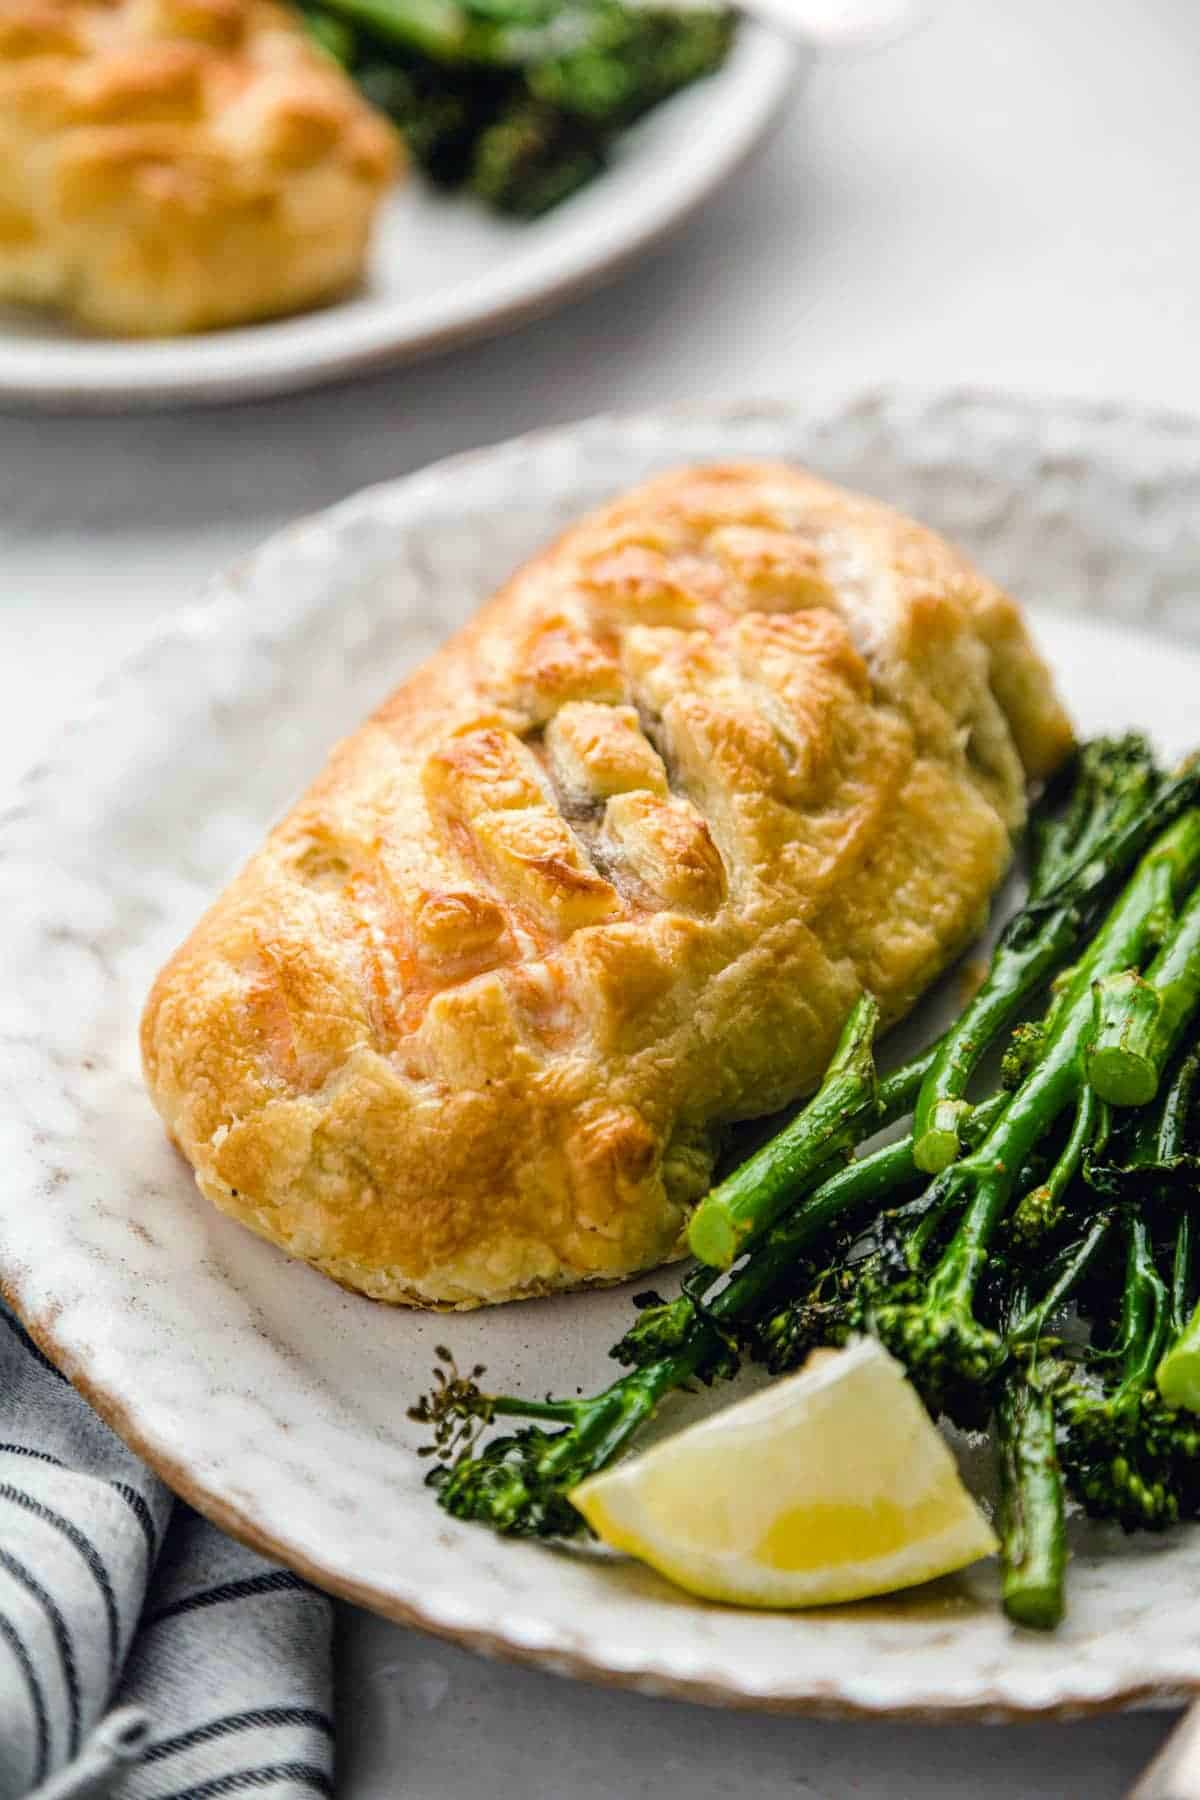 Salmon Wellington on a plate, served with steamed broccolini and a lemon wedge